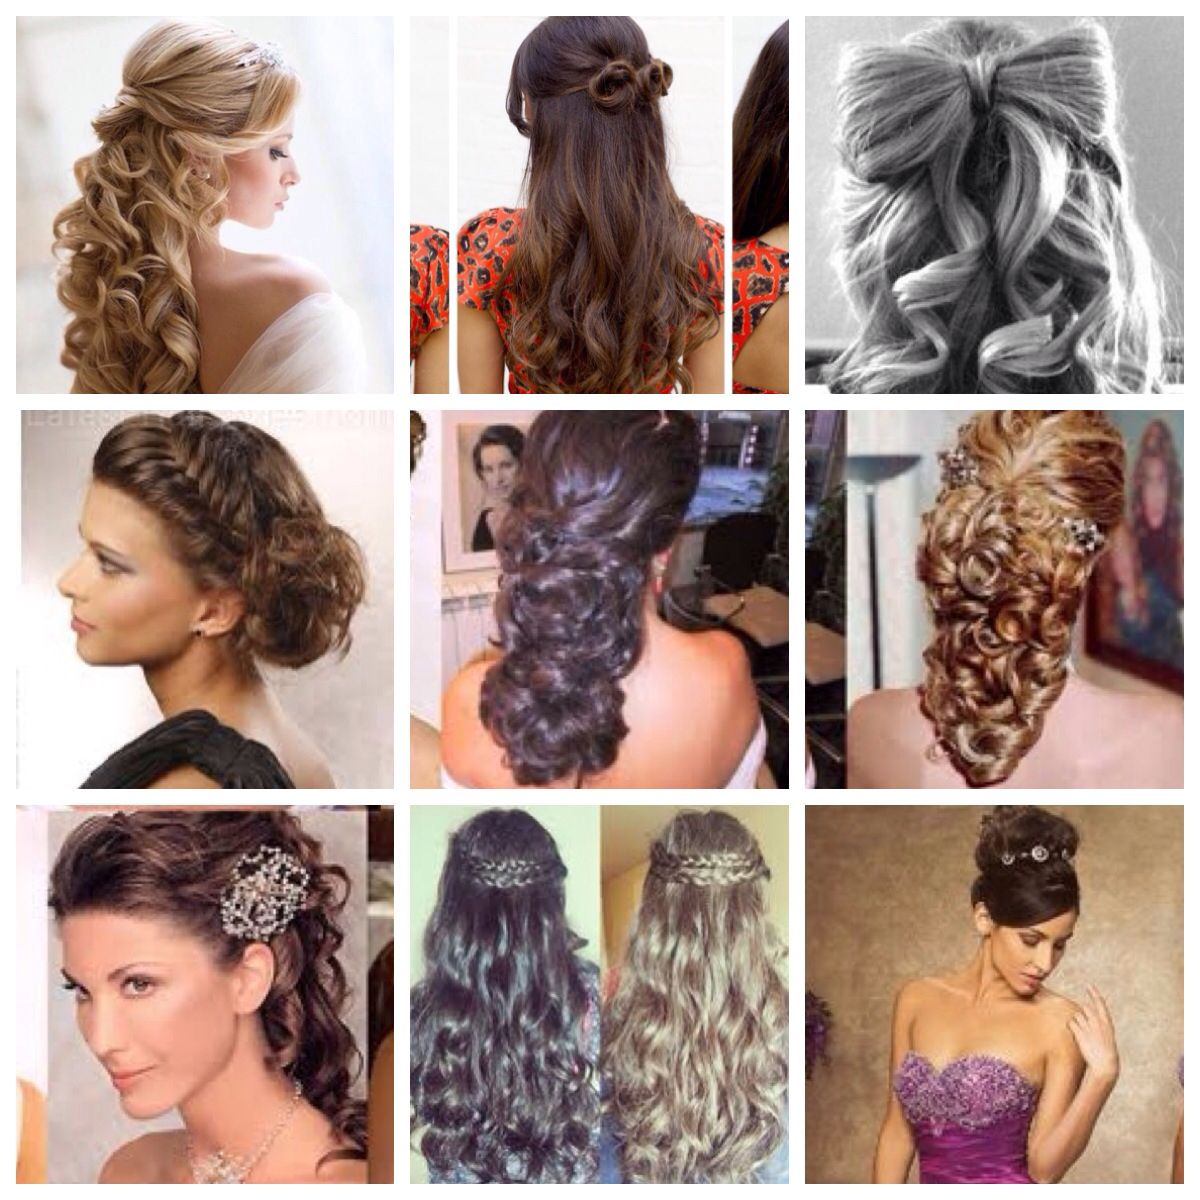 quinceanera hairstyles with curls and tiara ~ hair is our crown